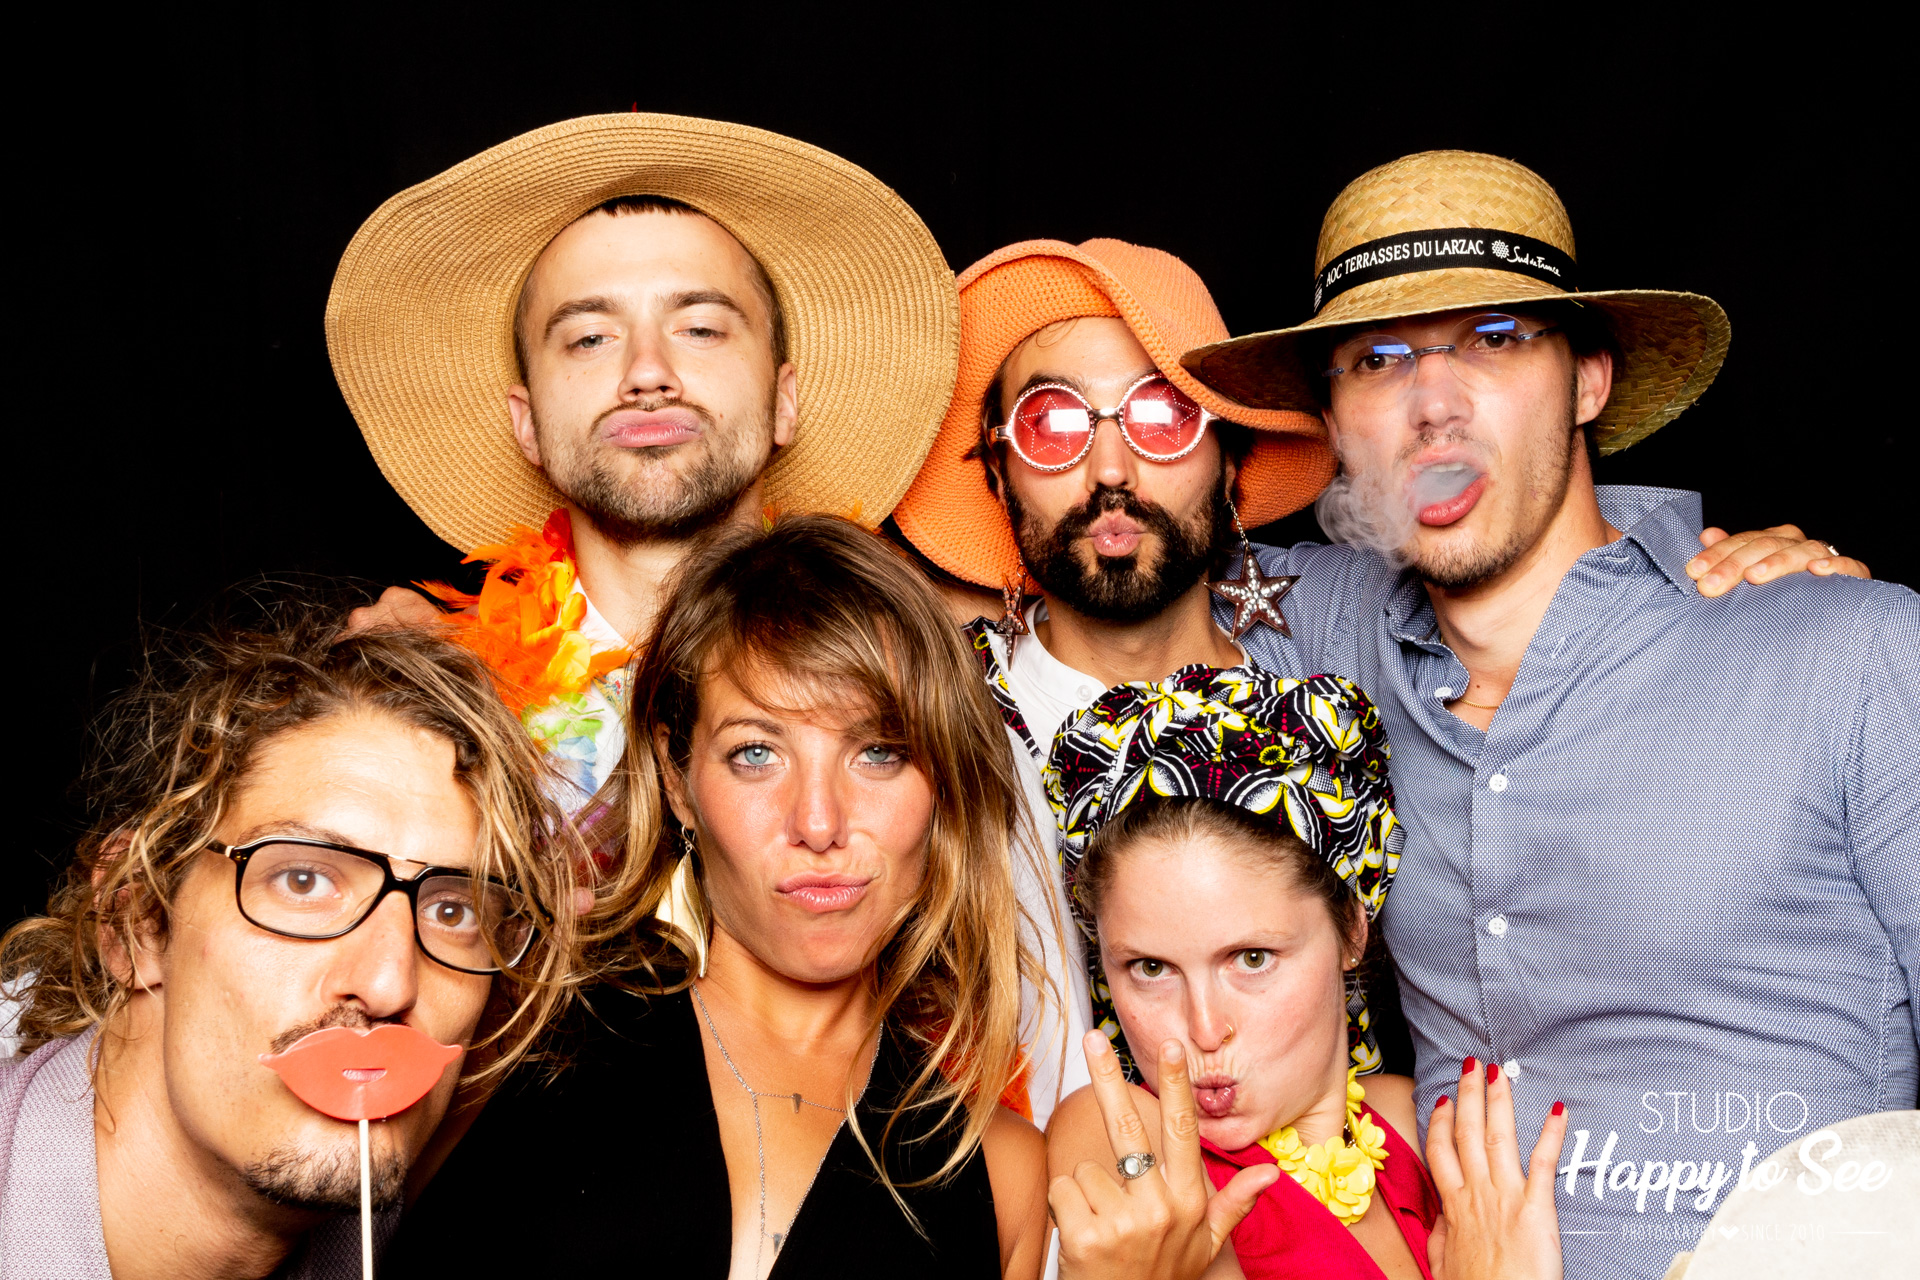 Studio Mobile Happy to See animation photobooth mariage Toulouse Albi